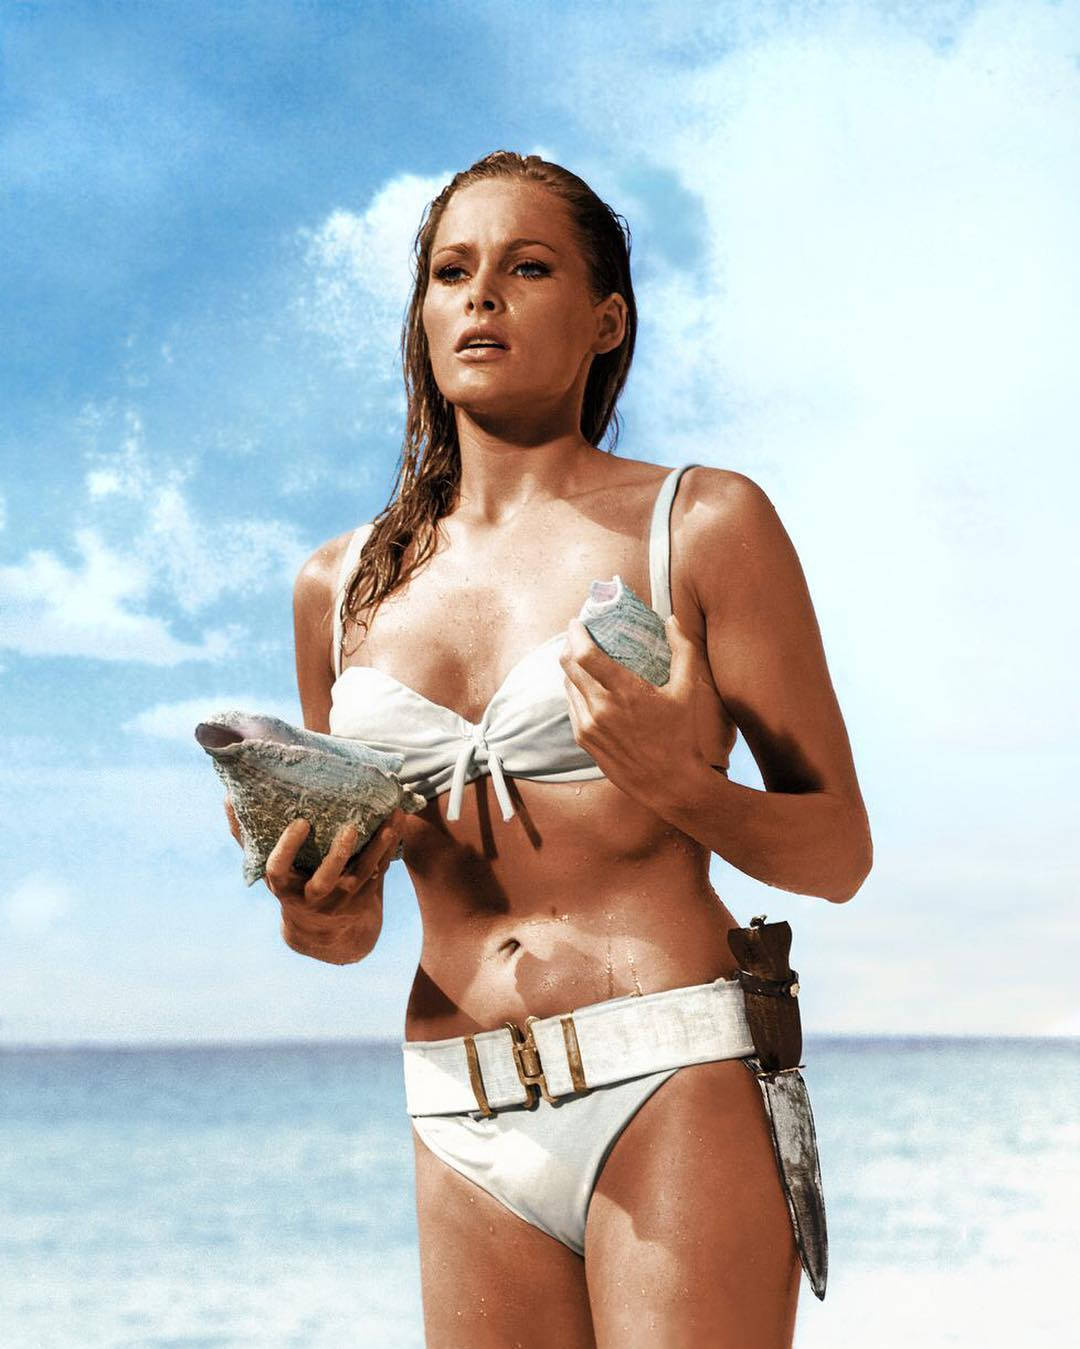 #JAPHYgal Ursula Andress with tools of the trade for 007.  @japhysurfco #japhysurfco #japhycrew #wcw #swimwear #beachbum #retro #inspiration #classic #menswear #surf #menswear #surfing  Live #BurntandBarefoot